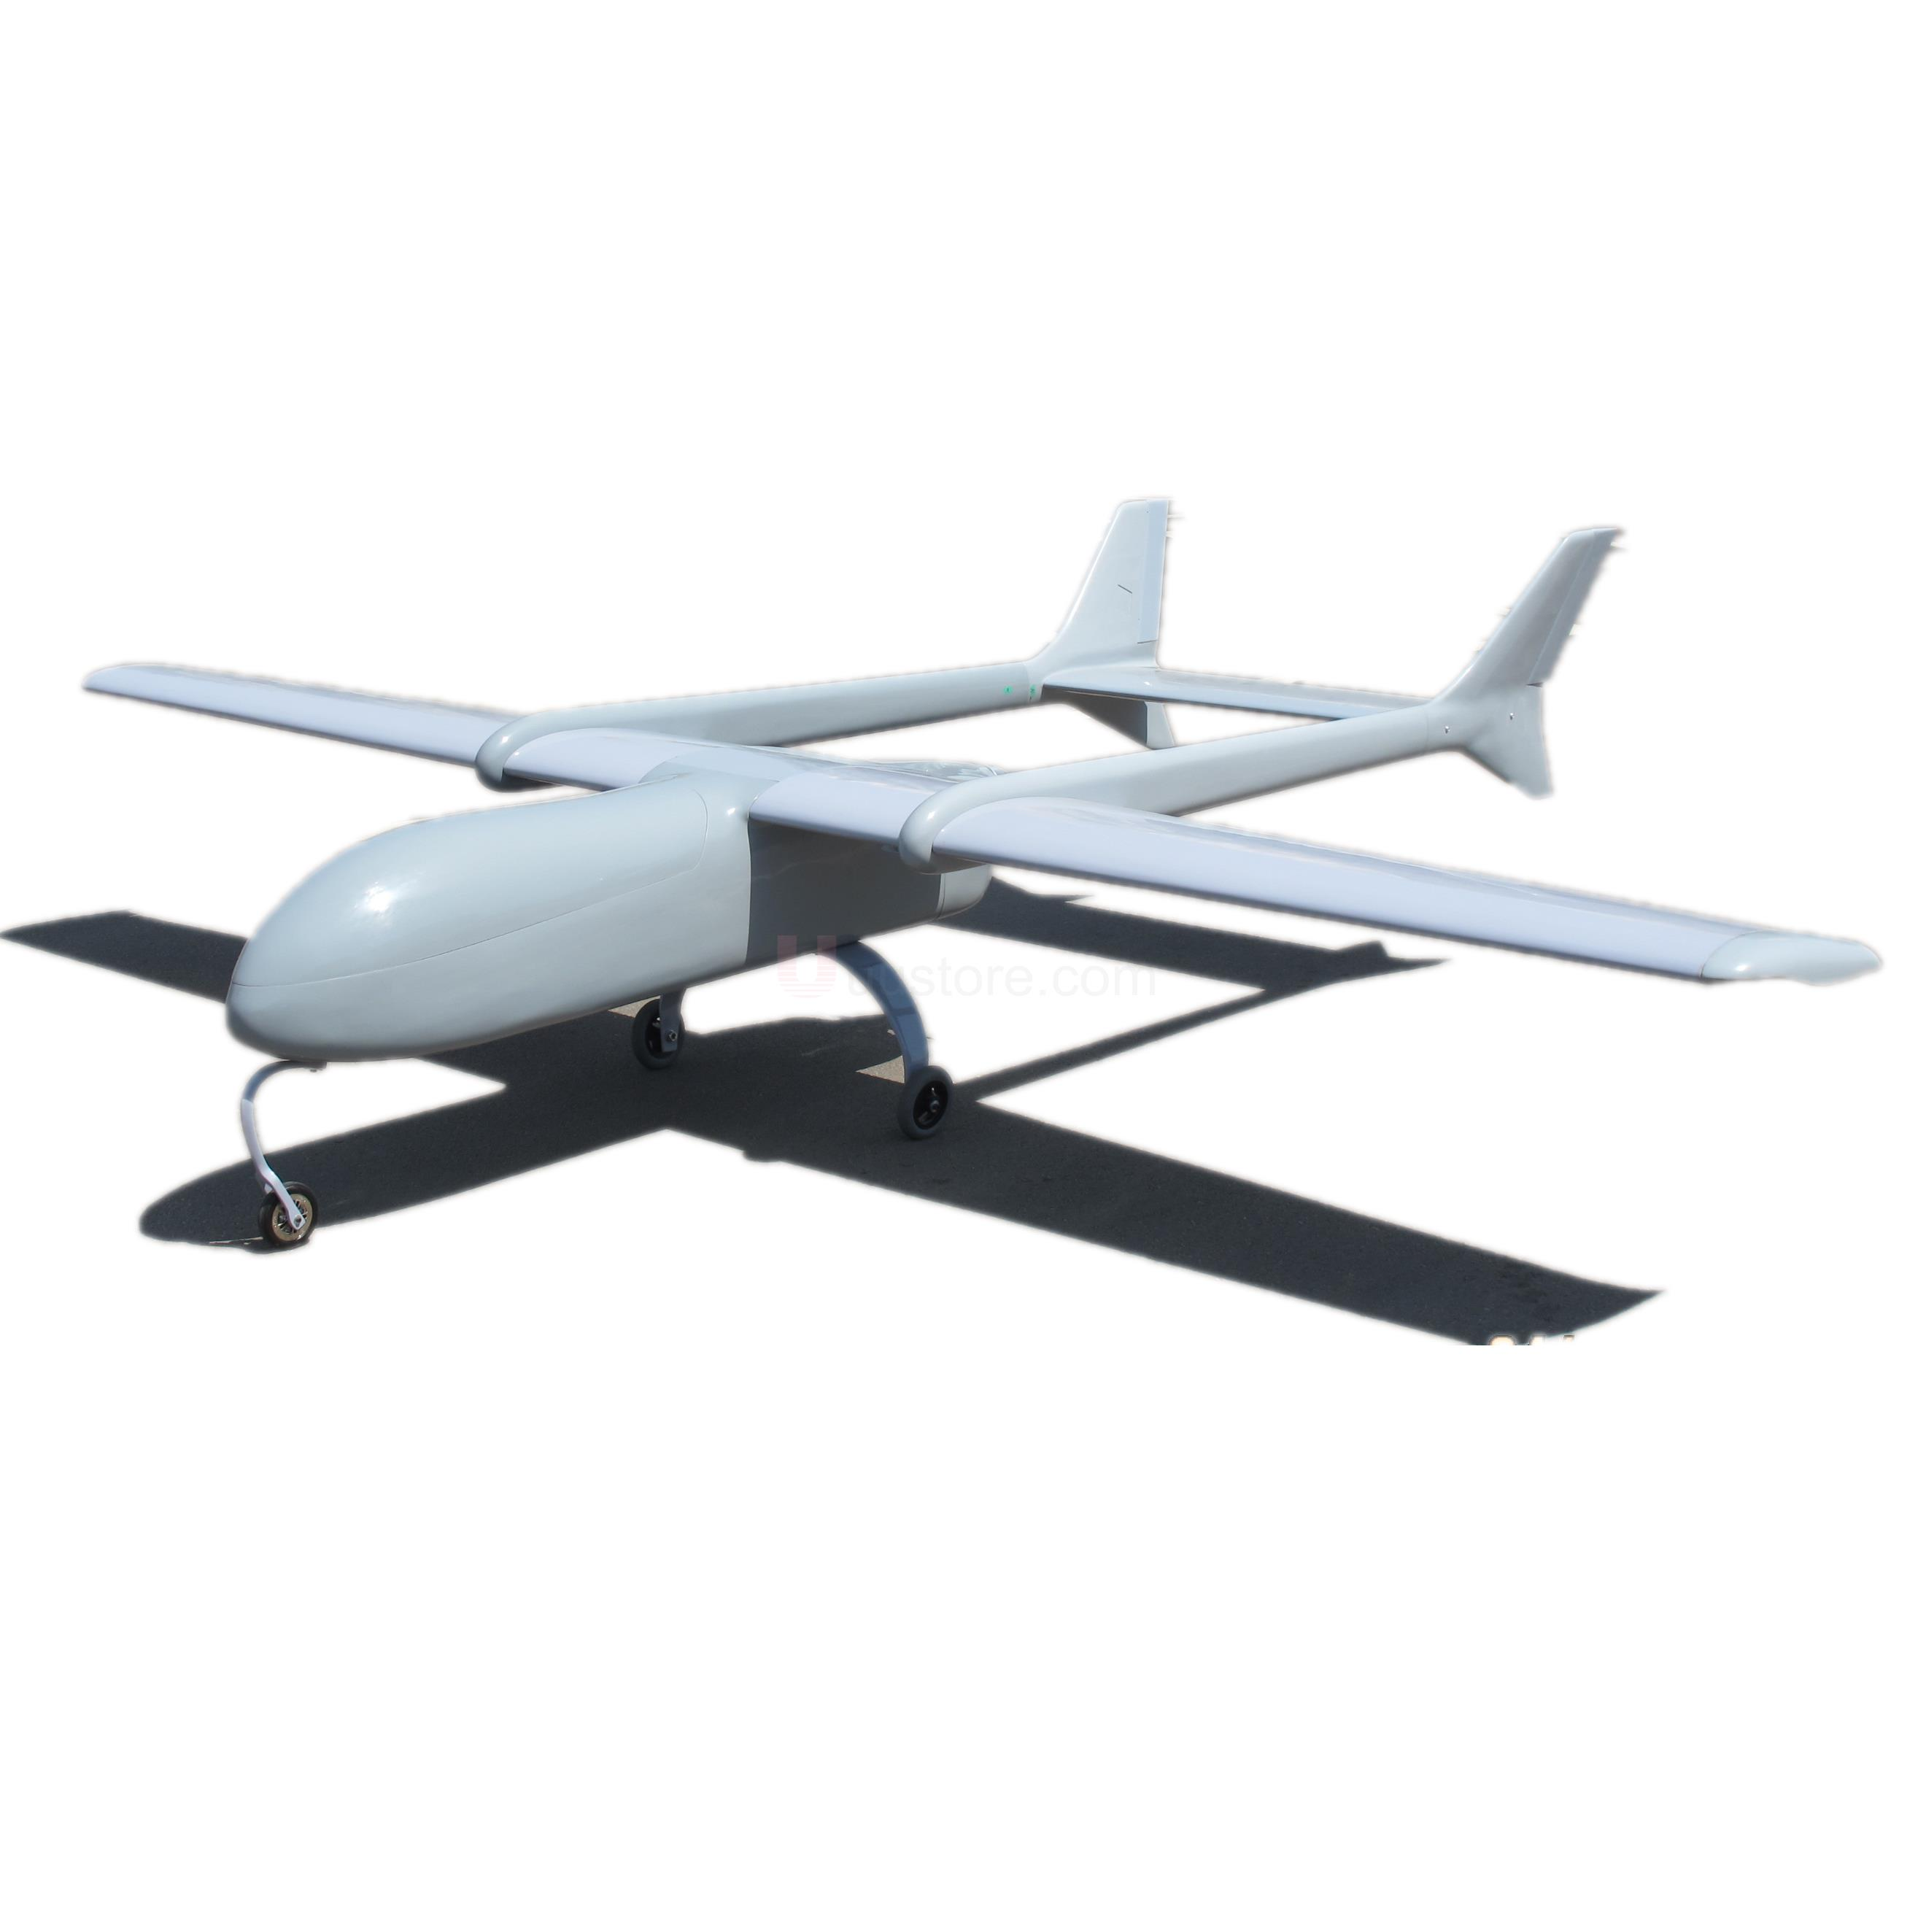 Skyeye 4450mm Super Huge UAV (H)T-tail Plane Platform AircraftH T Tail FPV Radio Remote Control RC Model Airplane image